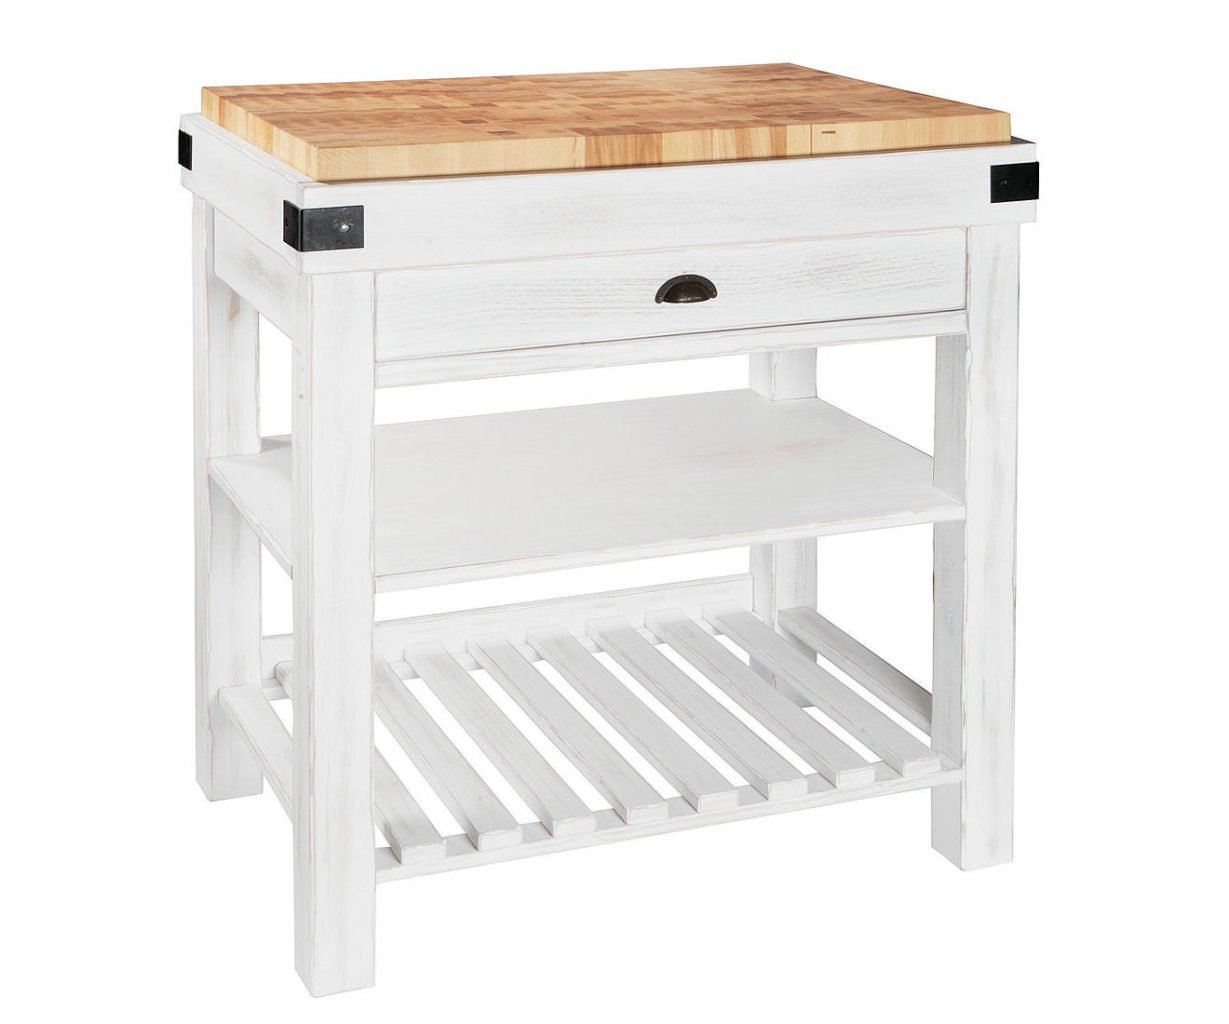 Best freestanding kitchen islands for small spaces - Small space kitchen island ...